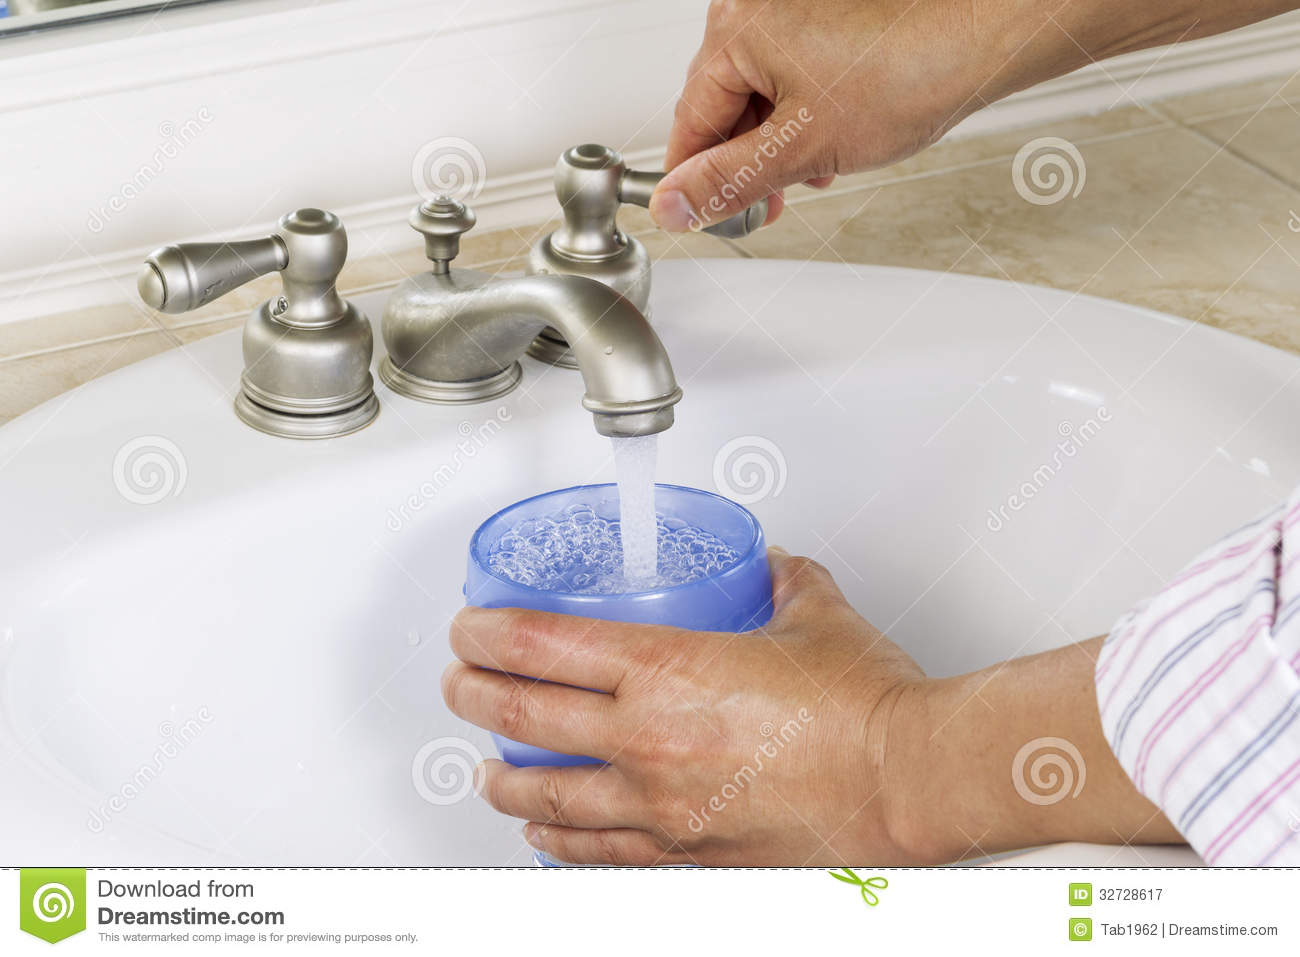 Pouring Water Into Cup From Bathroom Sink Royalty Free